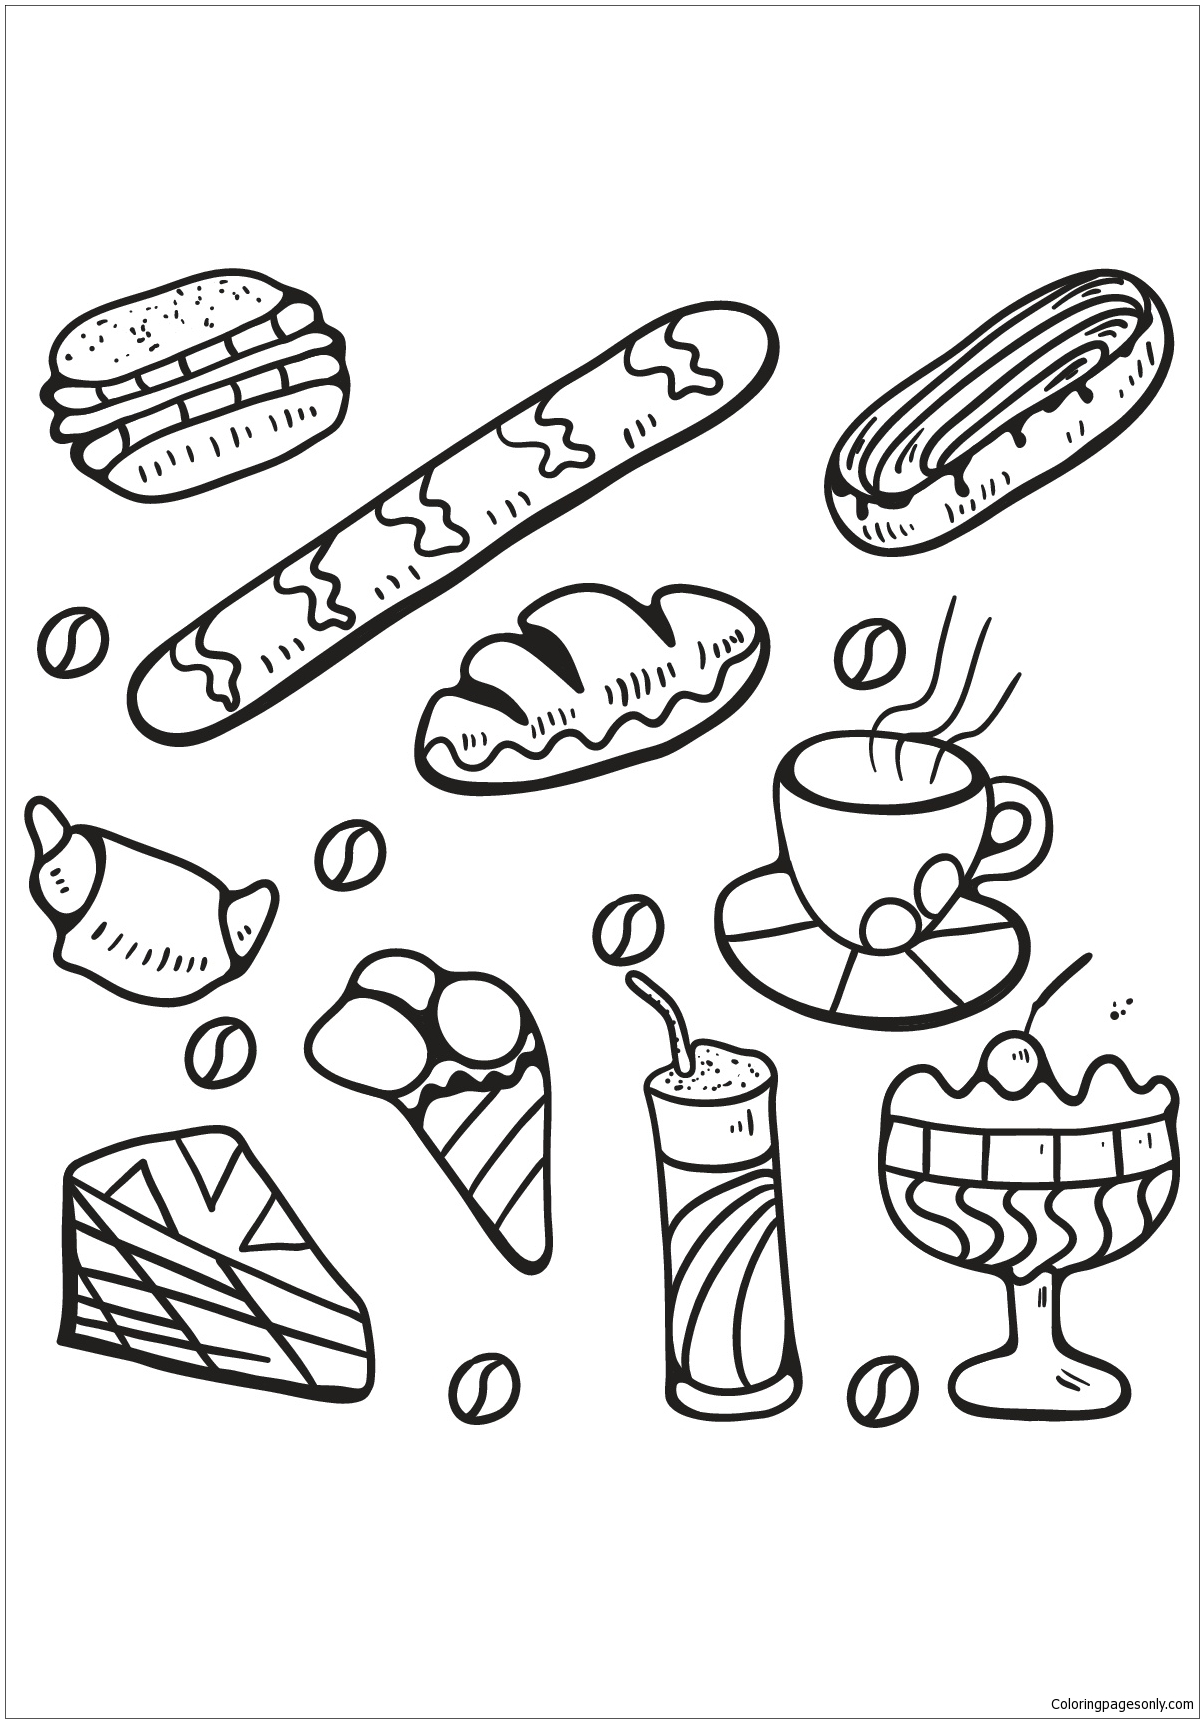 Cupcakes And Cakes 1 Coloring Pages